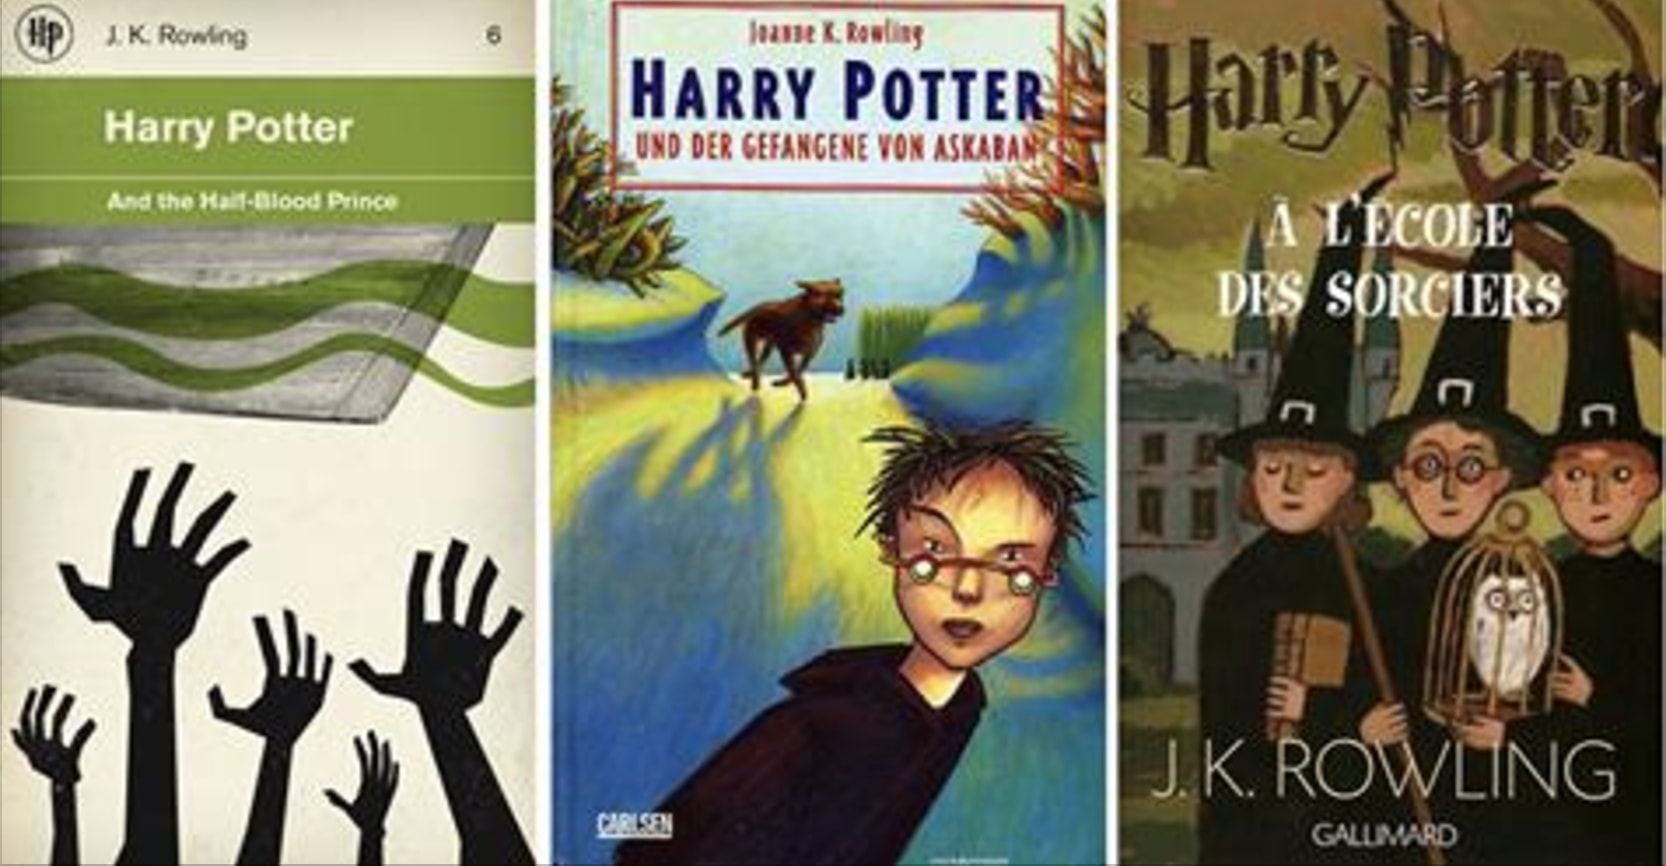 Harry Potter Book Covers Around The World : Magical harry potter book covers from around the